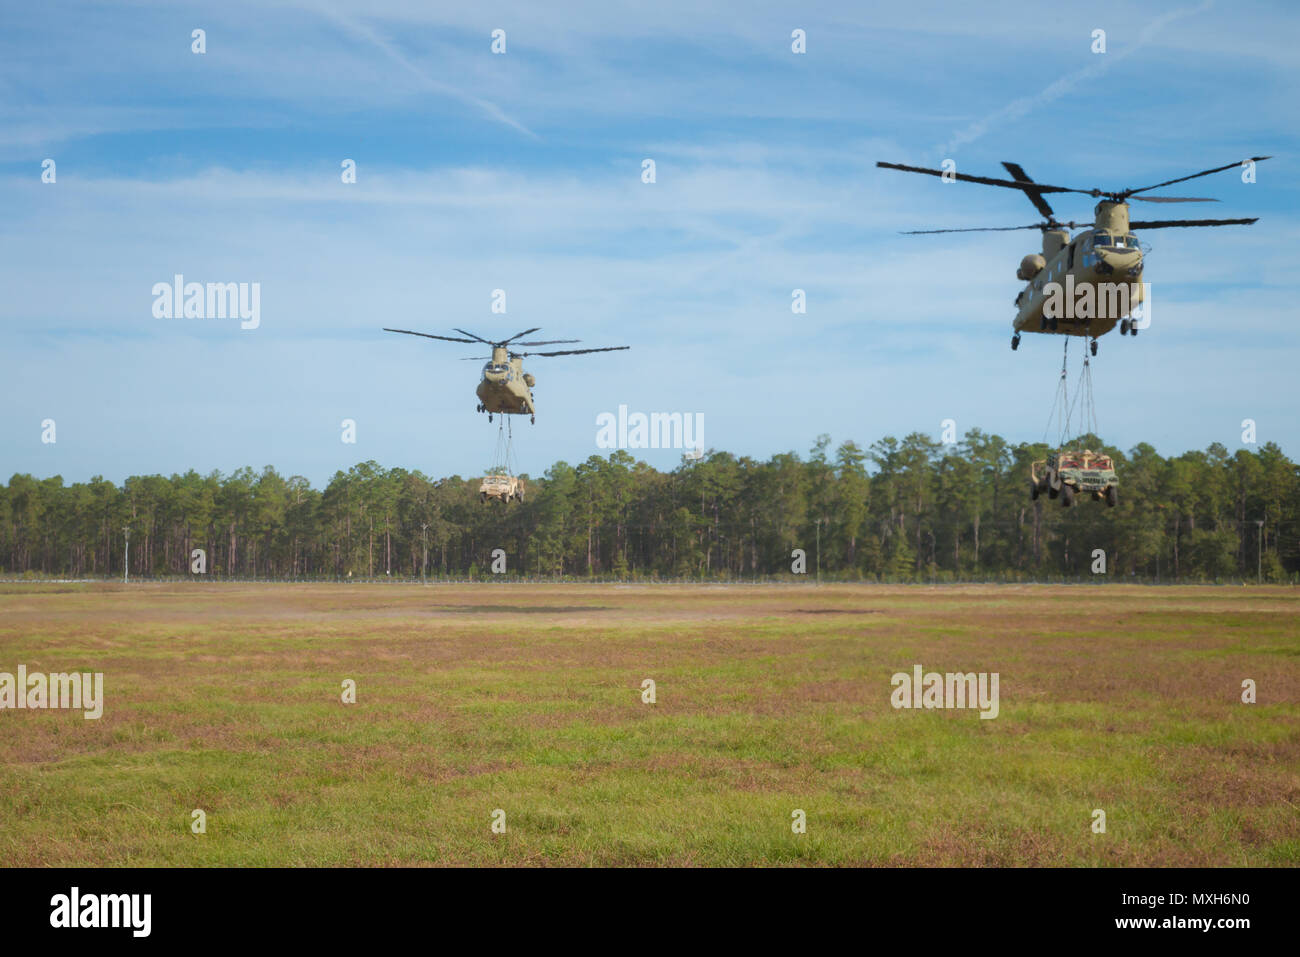 Two Chinooks assigned to 3rd Combat Aviation Briade transport Humvees and artilley pieces during a slingload training mission at Fort Stewart, Nov 6, 2016. (U.S. Army photo by Lt. Col. Brian J. Fickel) - Stock Image